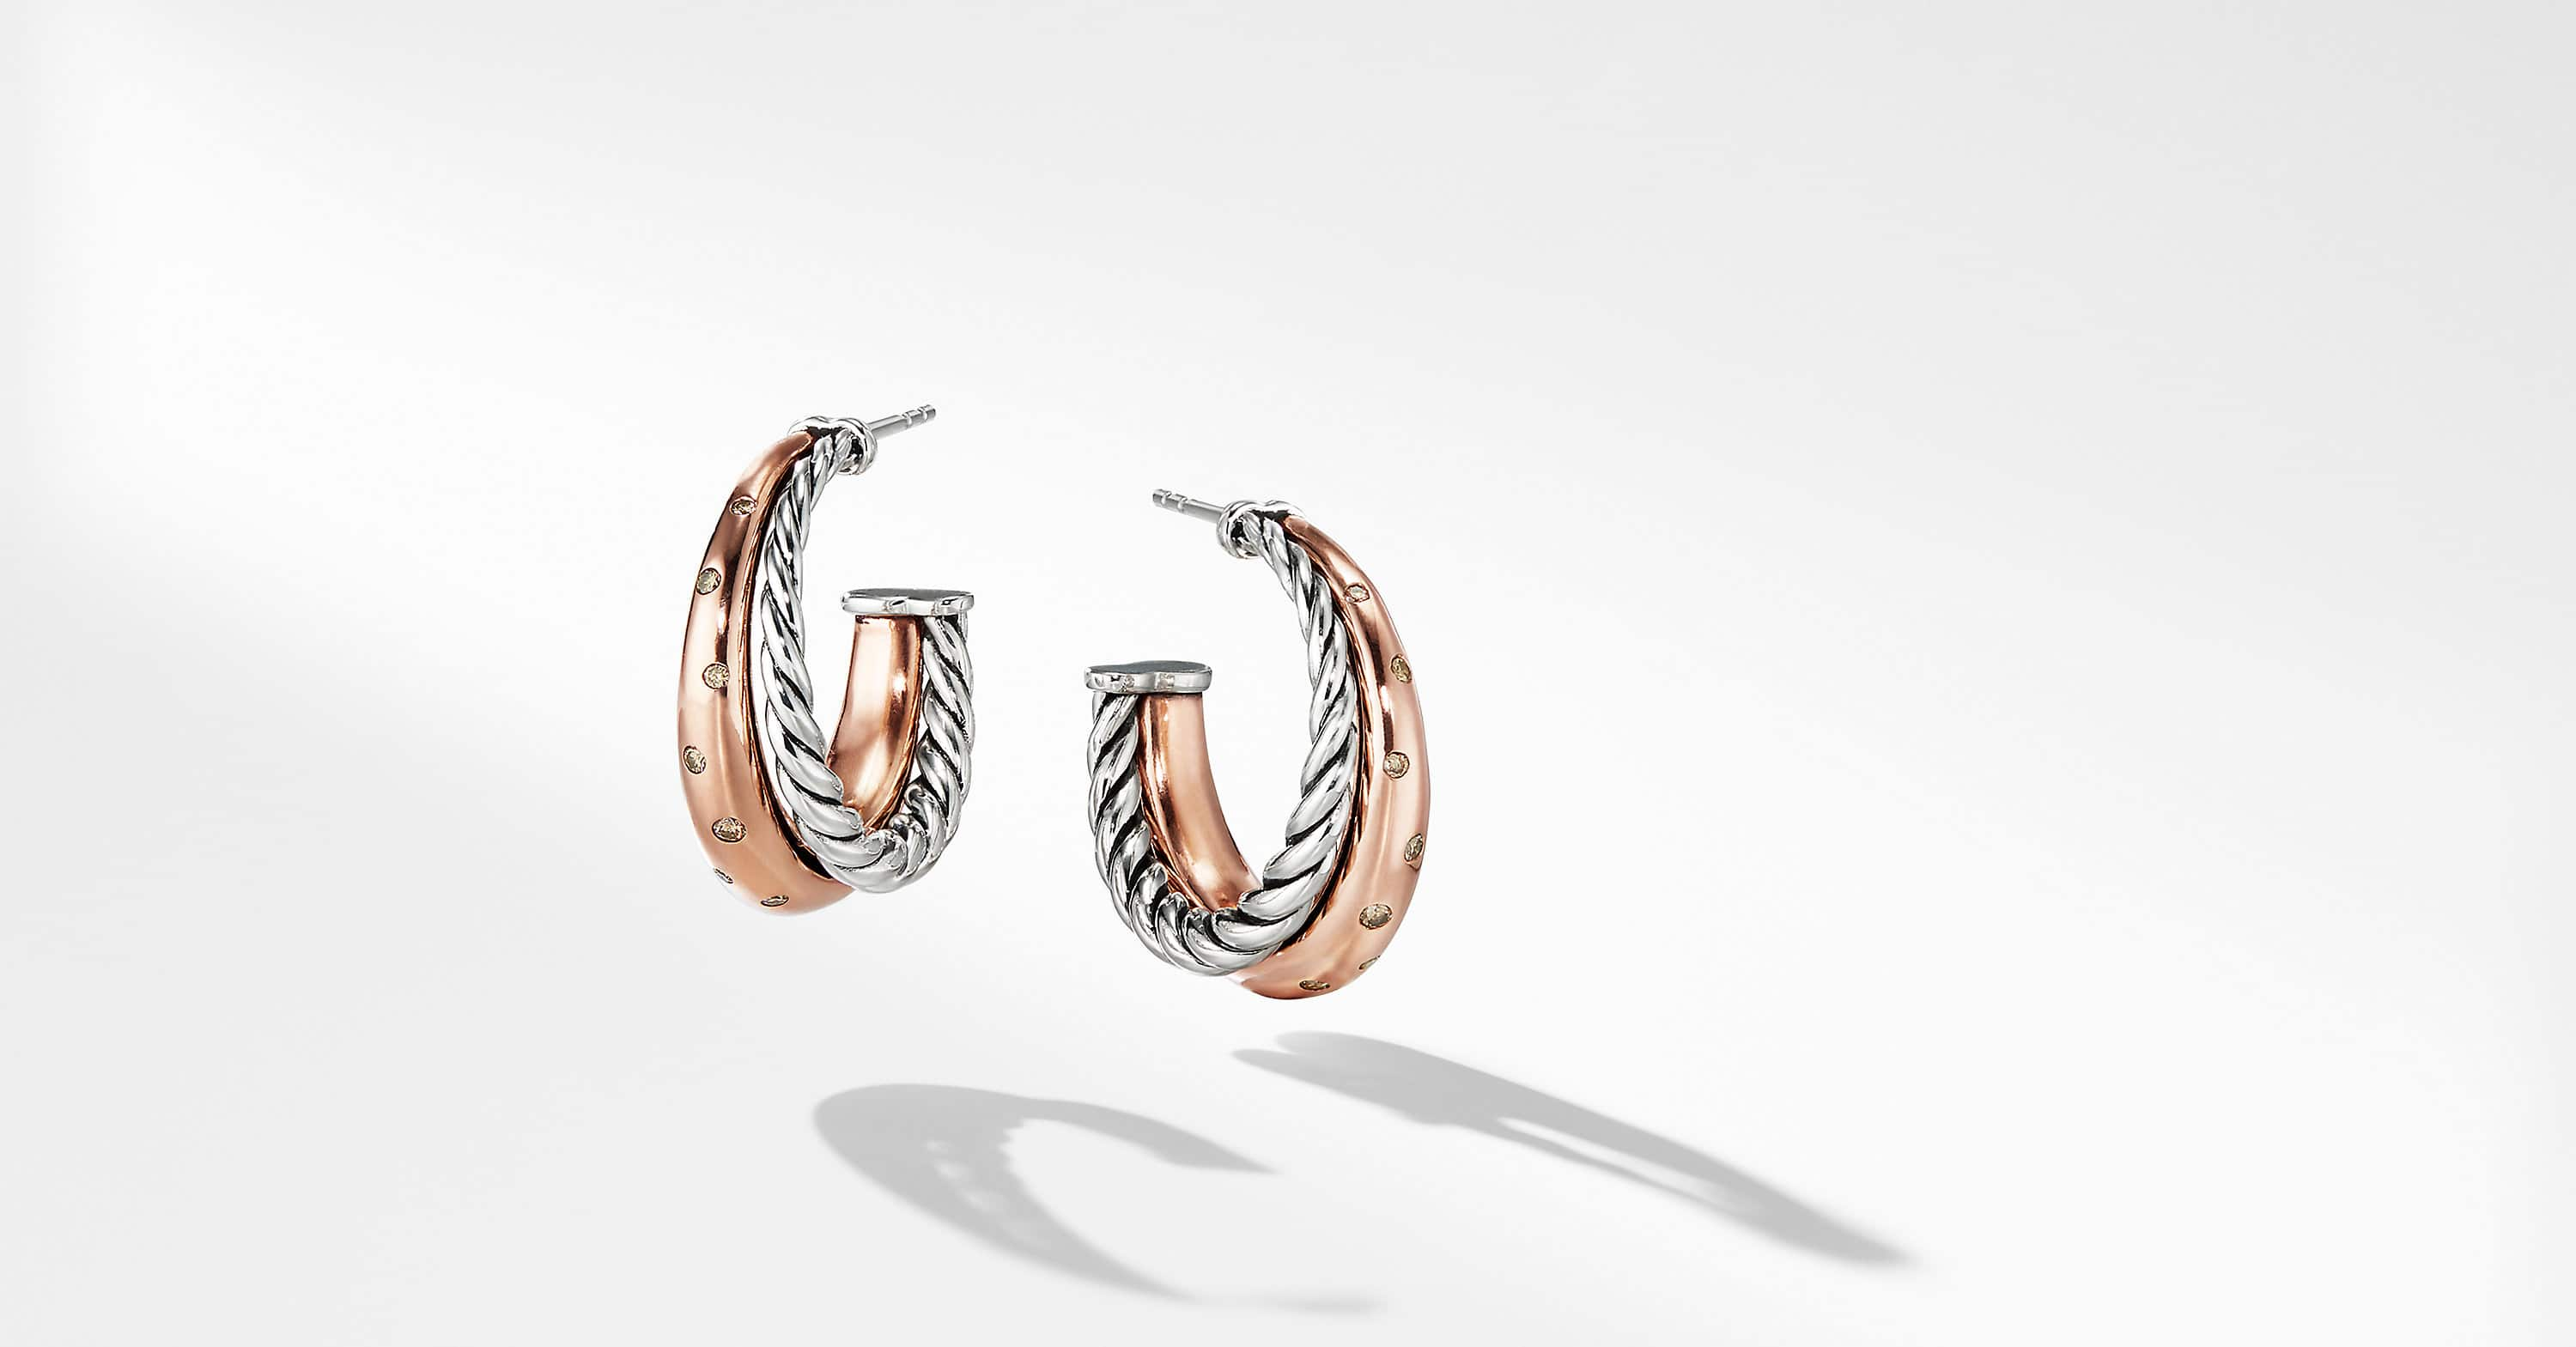 Pure Form Mixed Metal Hoop Earrings with Diamonds, 26.5mm